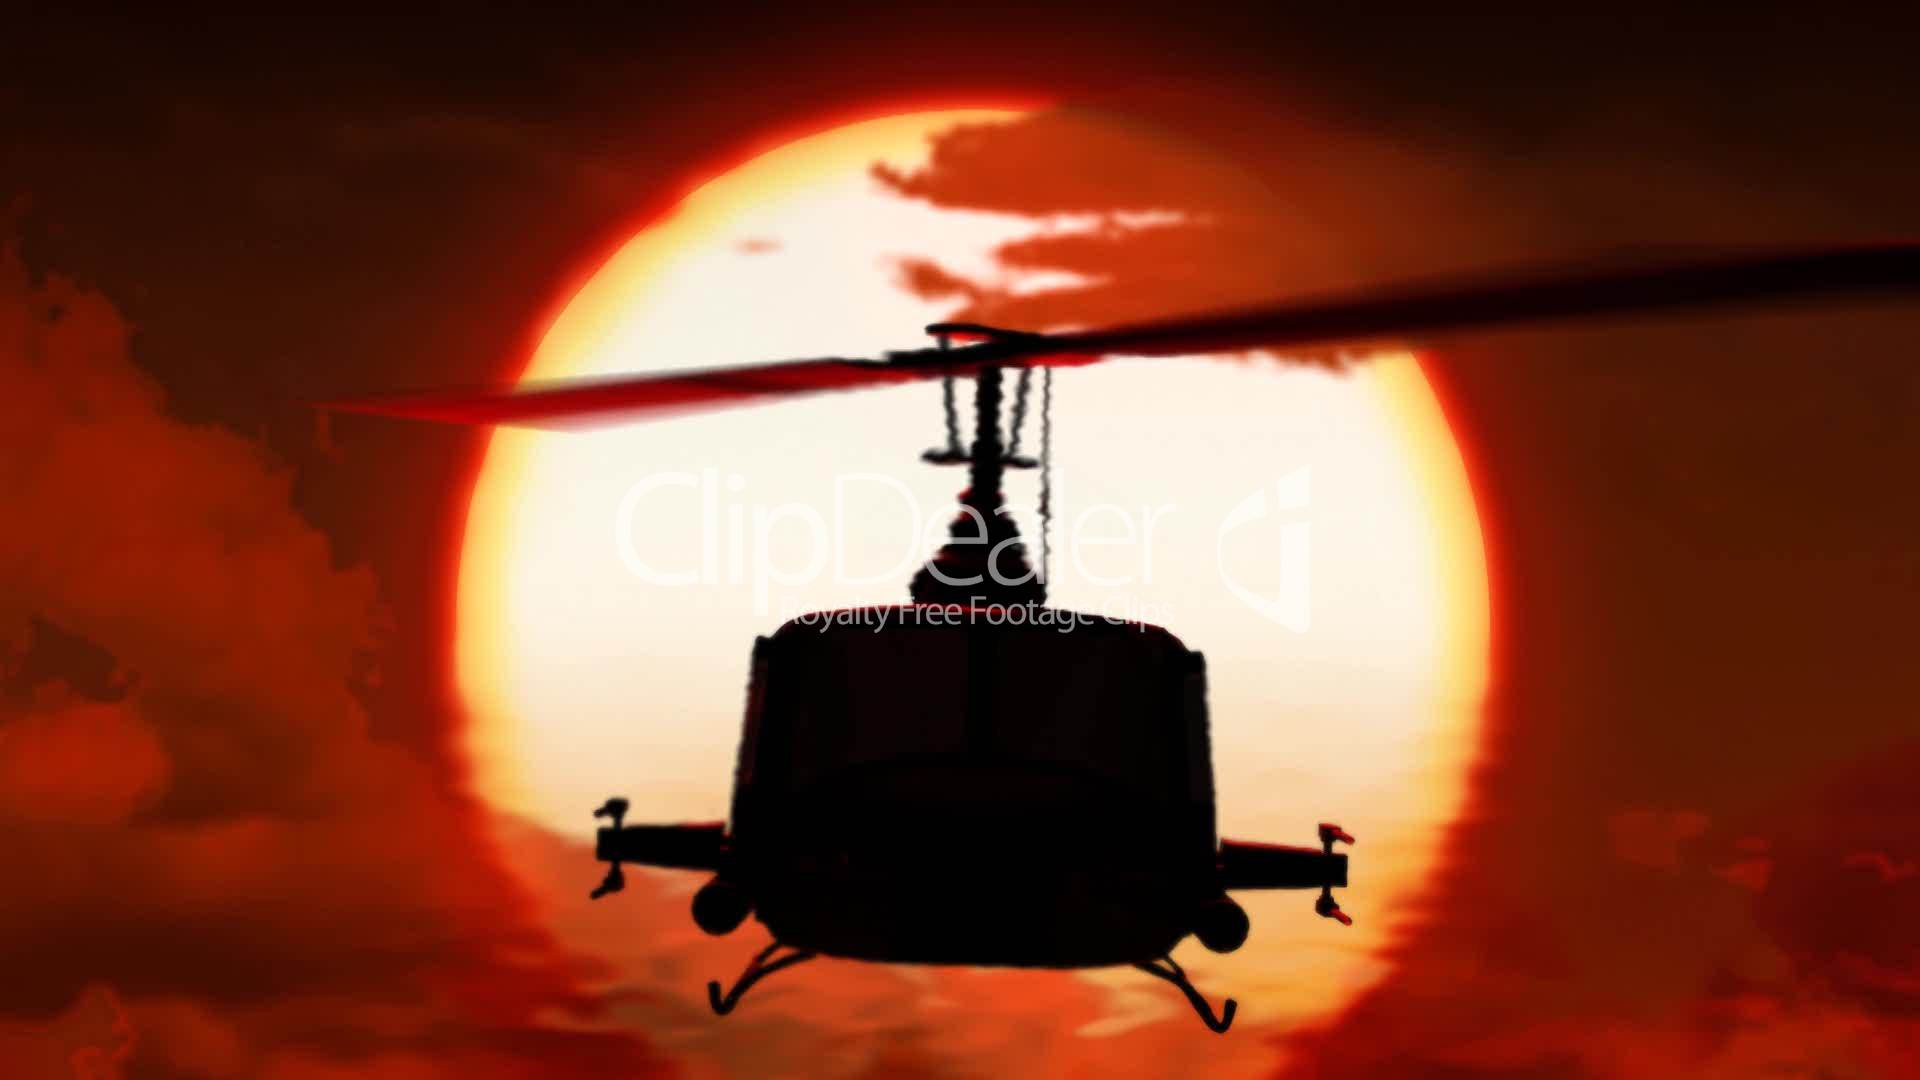 contract helicopter pilot jobs with 267416 on Aircraft Mechanic Resume moreover Australian National University Dhimmies Itself To The Religion Of Perpetual Outrage further 132979 also Career Paths Booklet V10 20151020 54173459 as well Convincing Design Layout Aircraft Mechanic Resume.